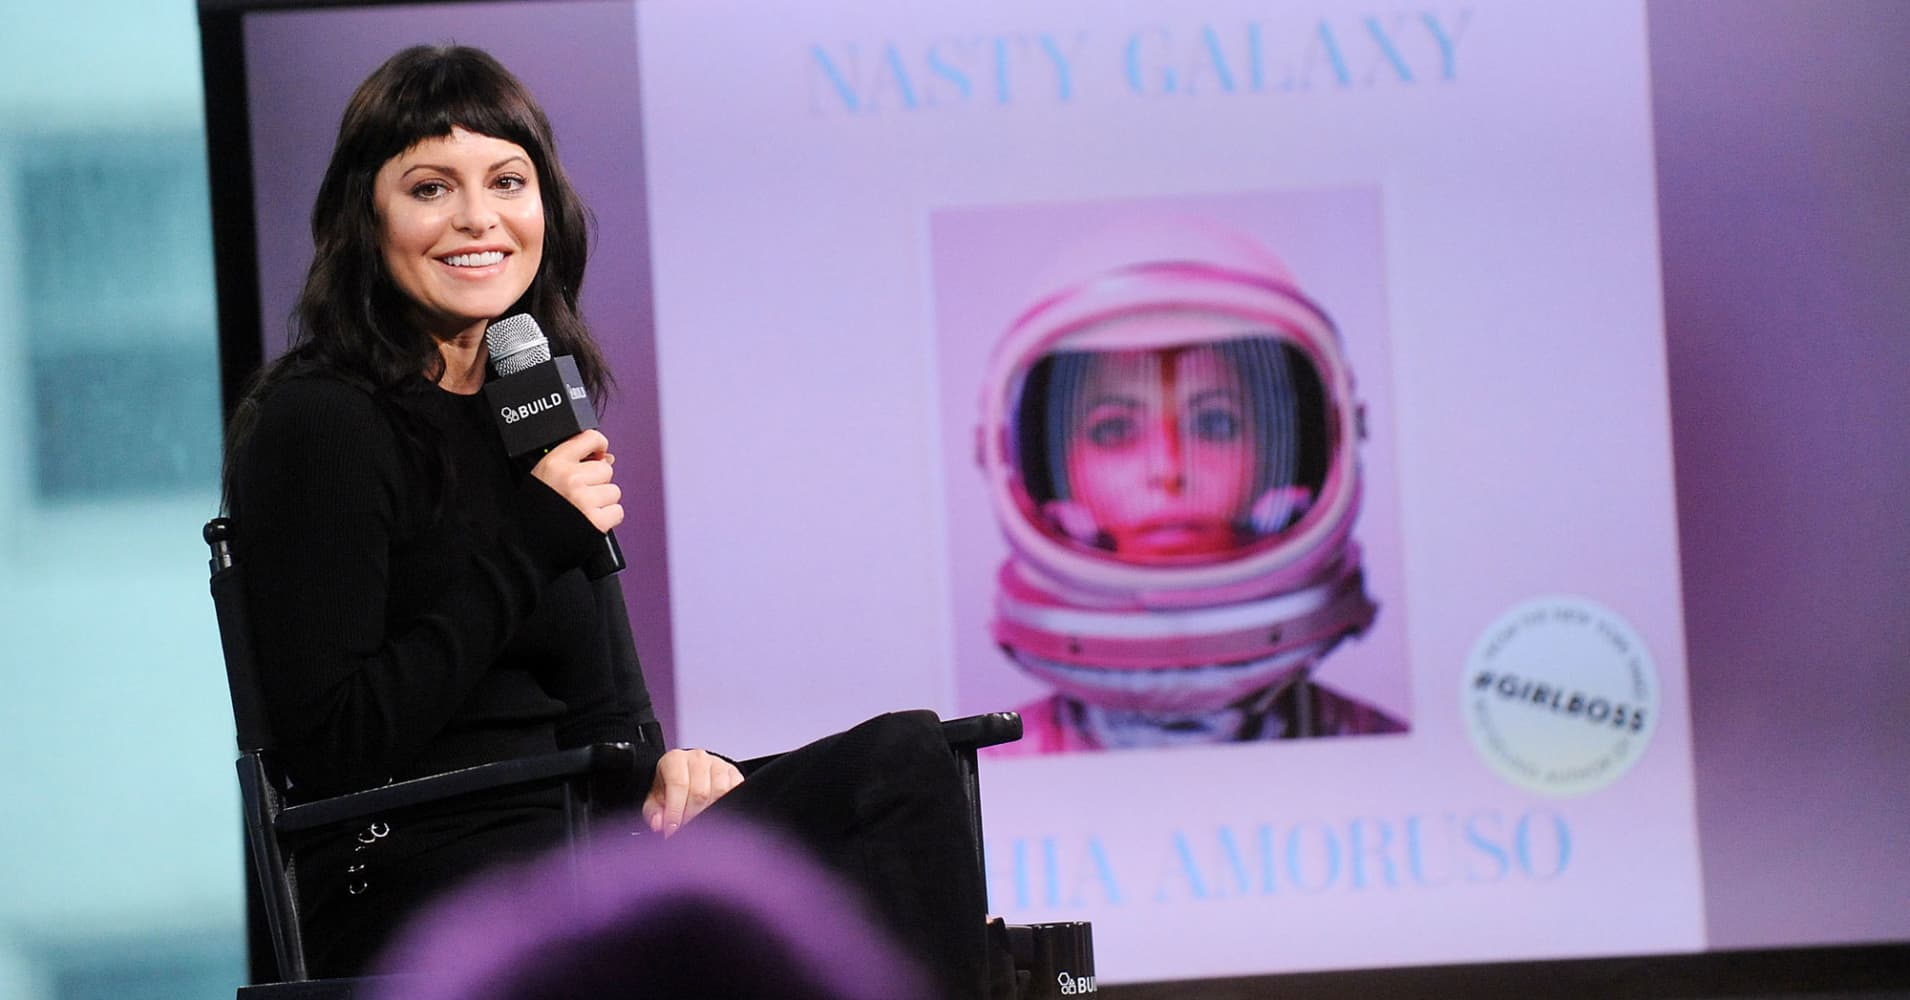 Sophia Amoruso discussing her new book 'Nasty Galaxy' on October 3, 2016 in New York City.